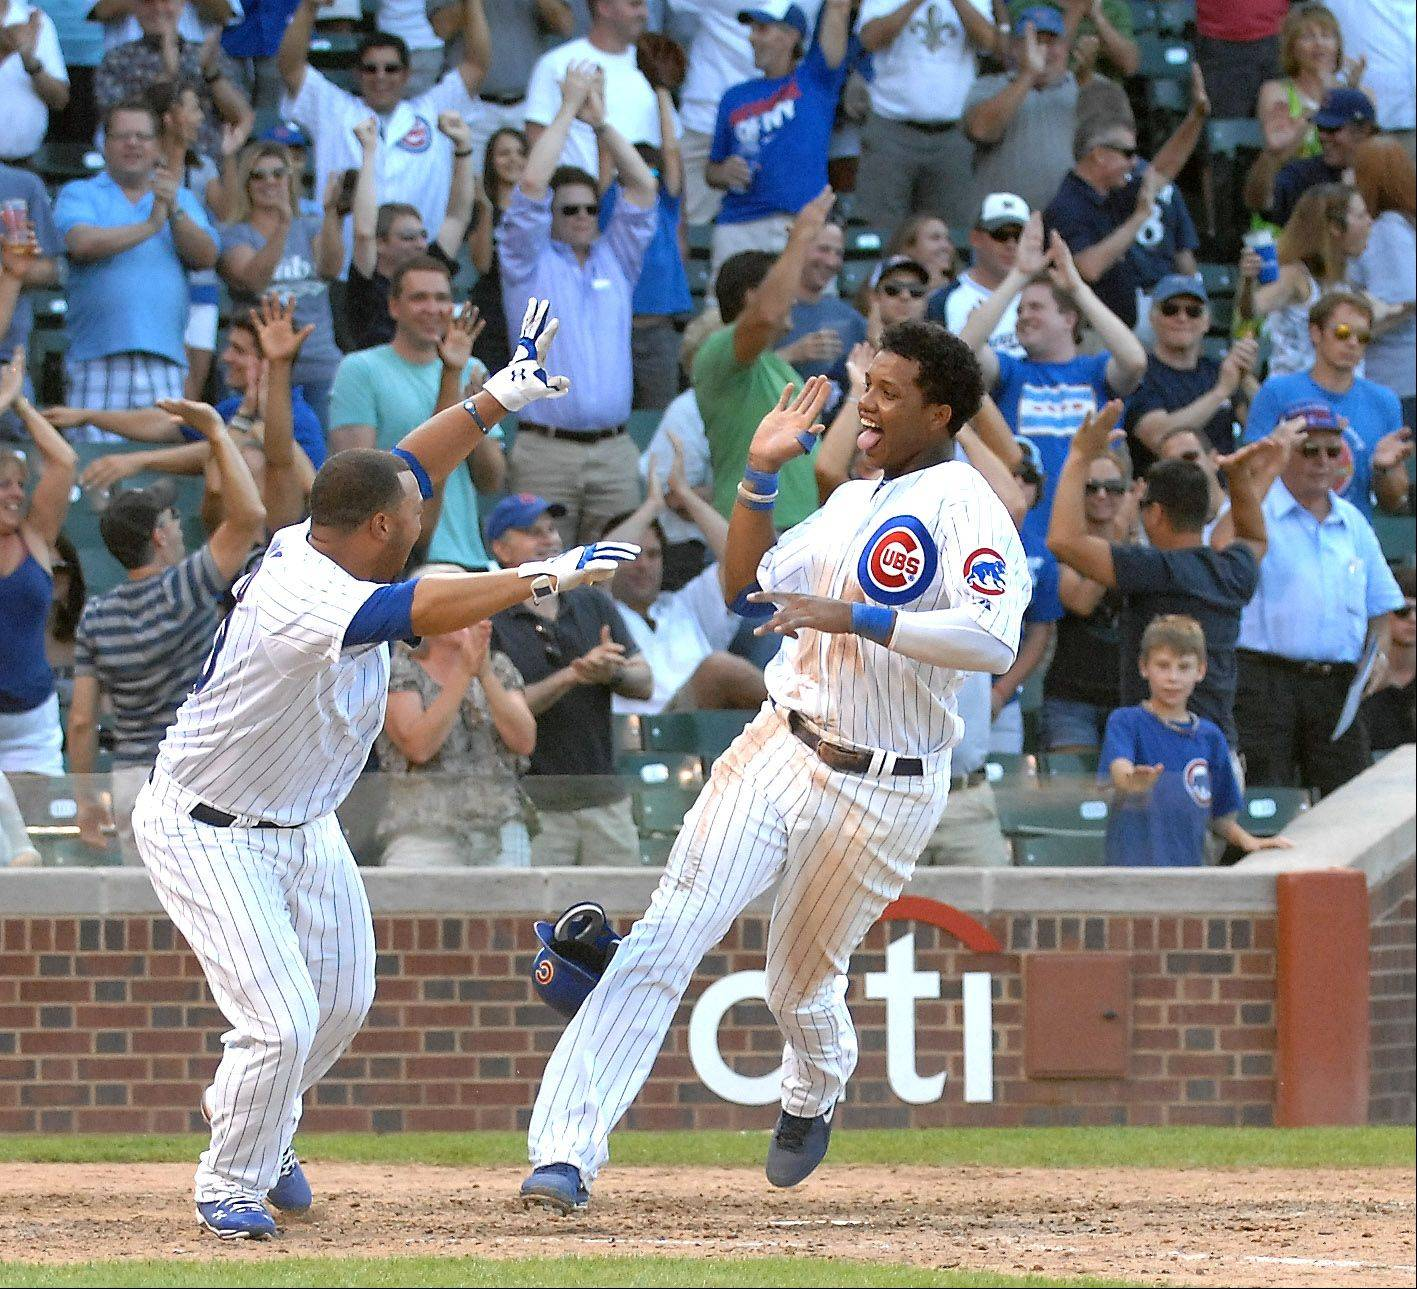 Starlin Castro will turn 23 on March 24, but he has already provided Cubs fans with many thrills and is signed through 2019.